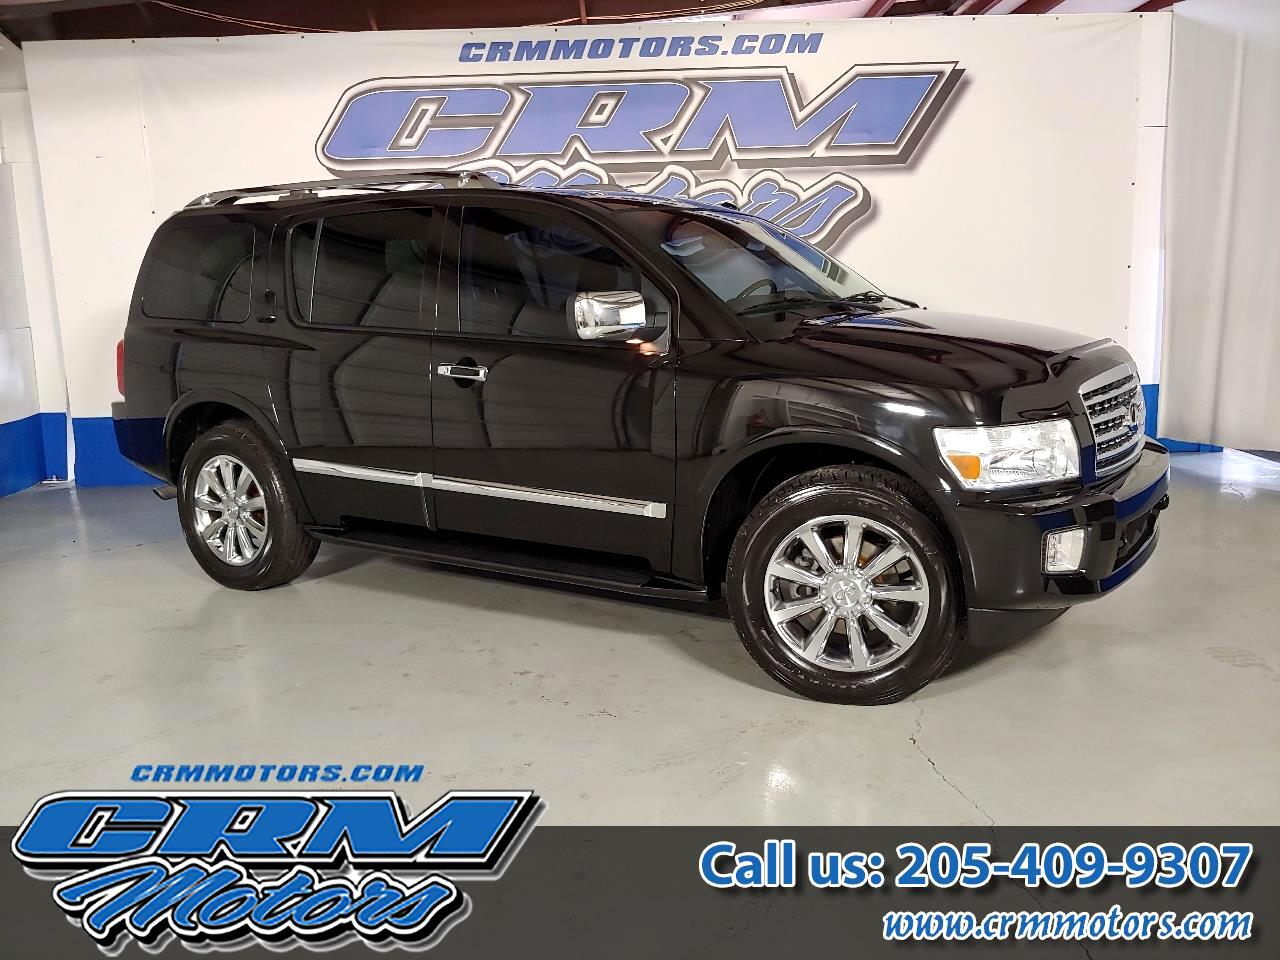 2009 Infiniti QX56 RWD, FULLY LOADED, LEATHER, CAPT CHAIRS, DVD!